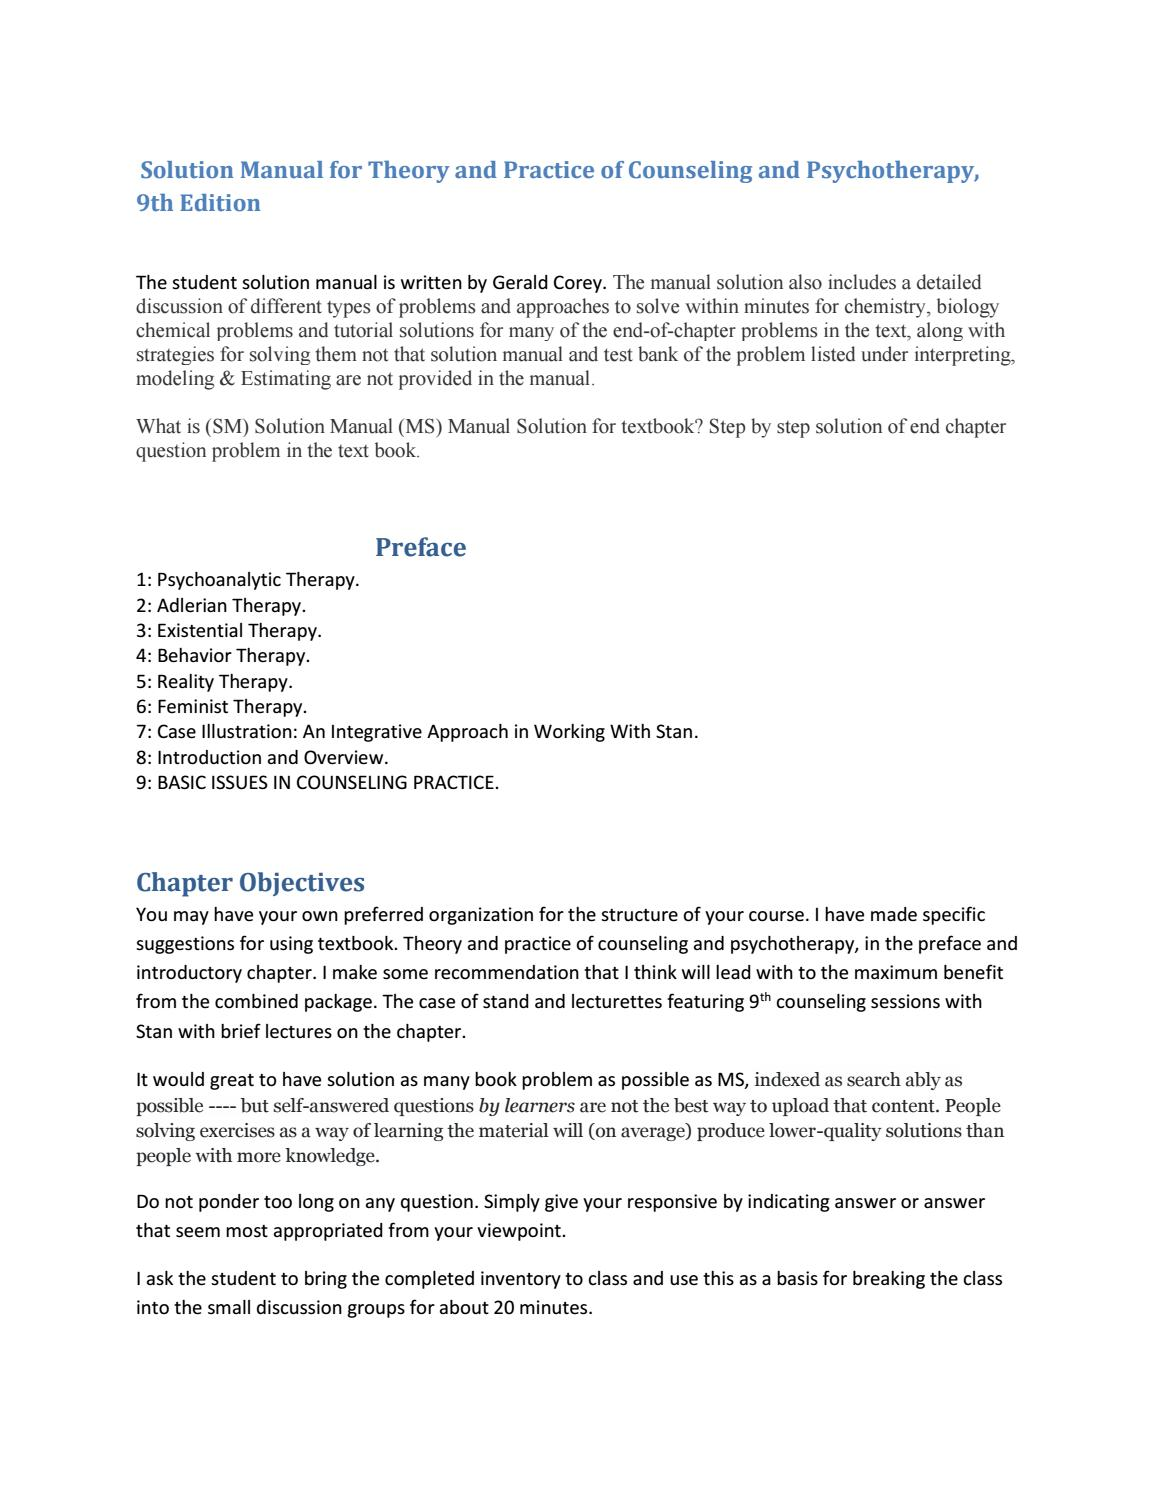 Solution manual for theory and practice of counseling and solution manual for theory and practice of counseling and psychotherapy by rogersingh issuu publicscrutiny Images